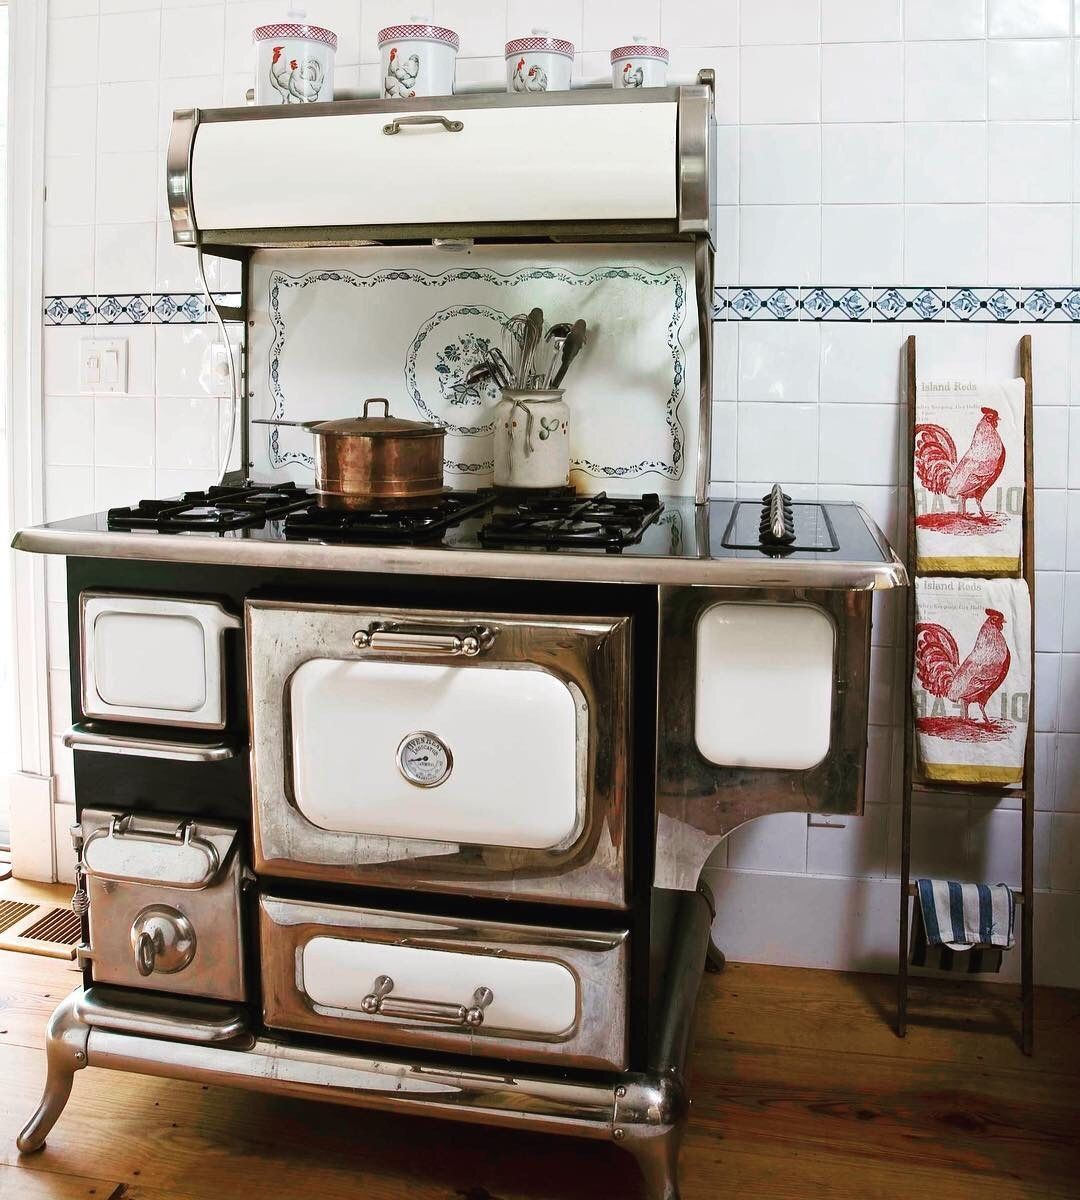 Delicieux Old Kitchen Stove, 1920s